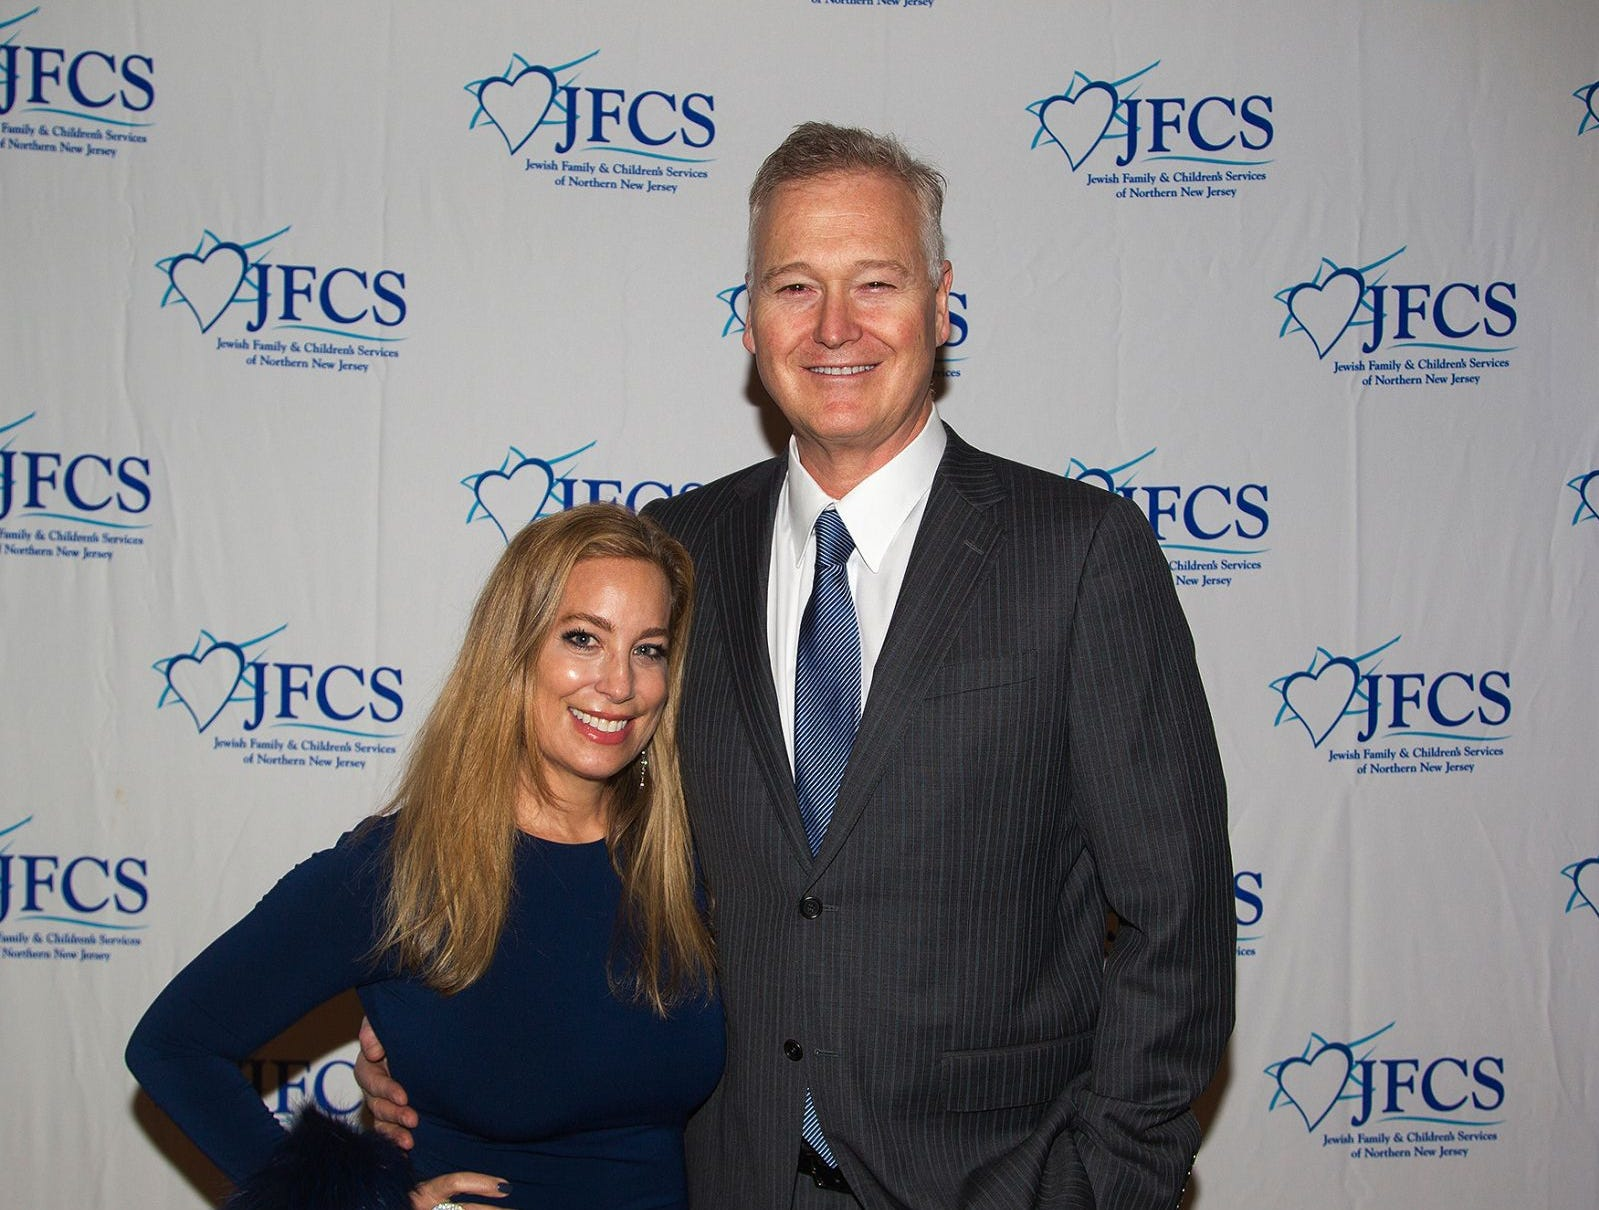 Dana and Jim Adler. Jewish Family & Children's Services of Northern New Jersey held its annual gala at the Edgewood Country Club in River Vale. The evening honored Shira Feuerstein, Jayne Petak, and Alan Scharfstein for their leadership, support, and dedication. 11/18/2018